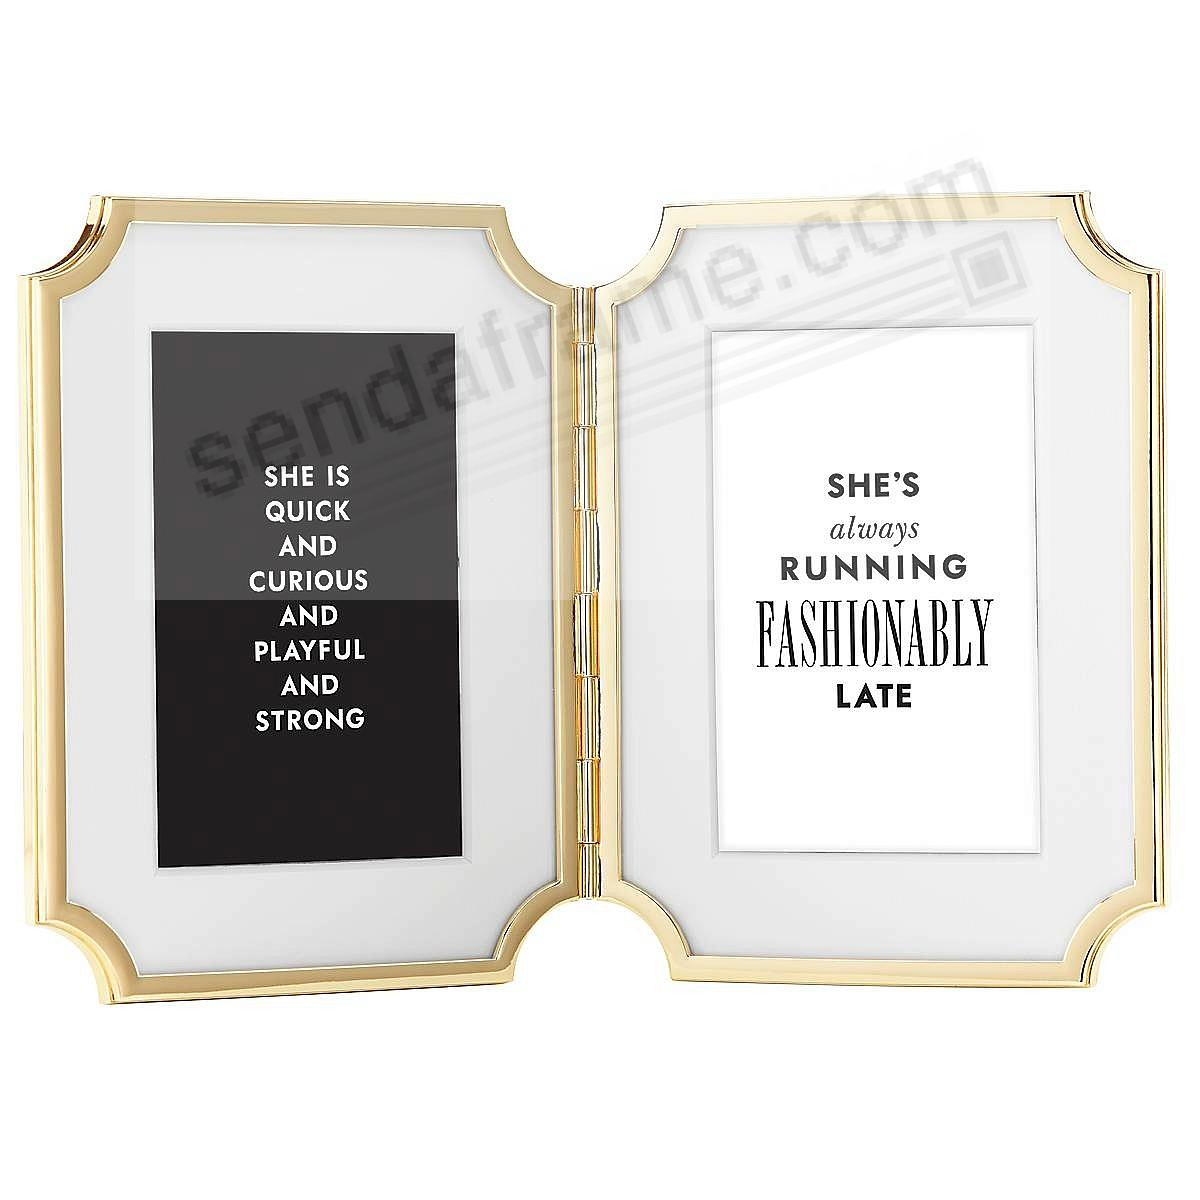 SULLIVAN STREET GOLD frame Hinged Double for 4x6 prints by kate ...